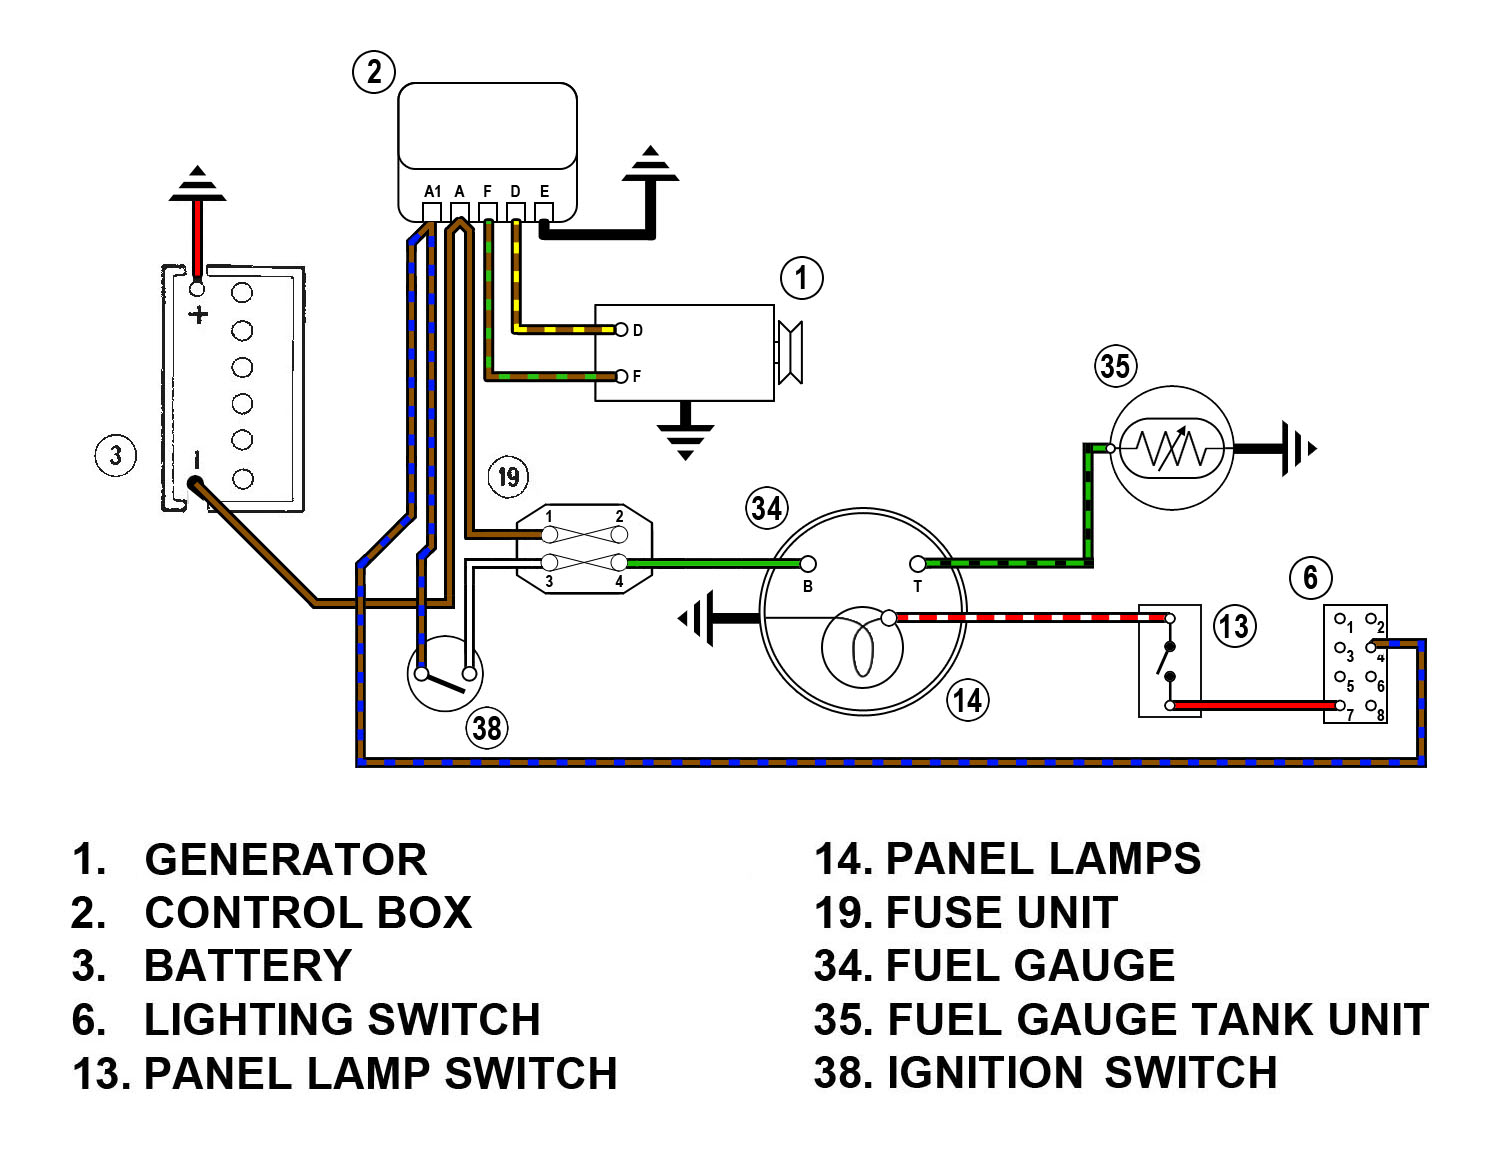 FuelGaugeWiringSpMkII_MGMkI fuel gauge wiring schematic fuel gauge mechanical \u2022 wiring Sunpro Volt Gauge at mifinder.co